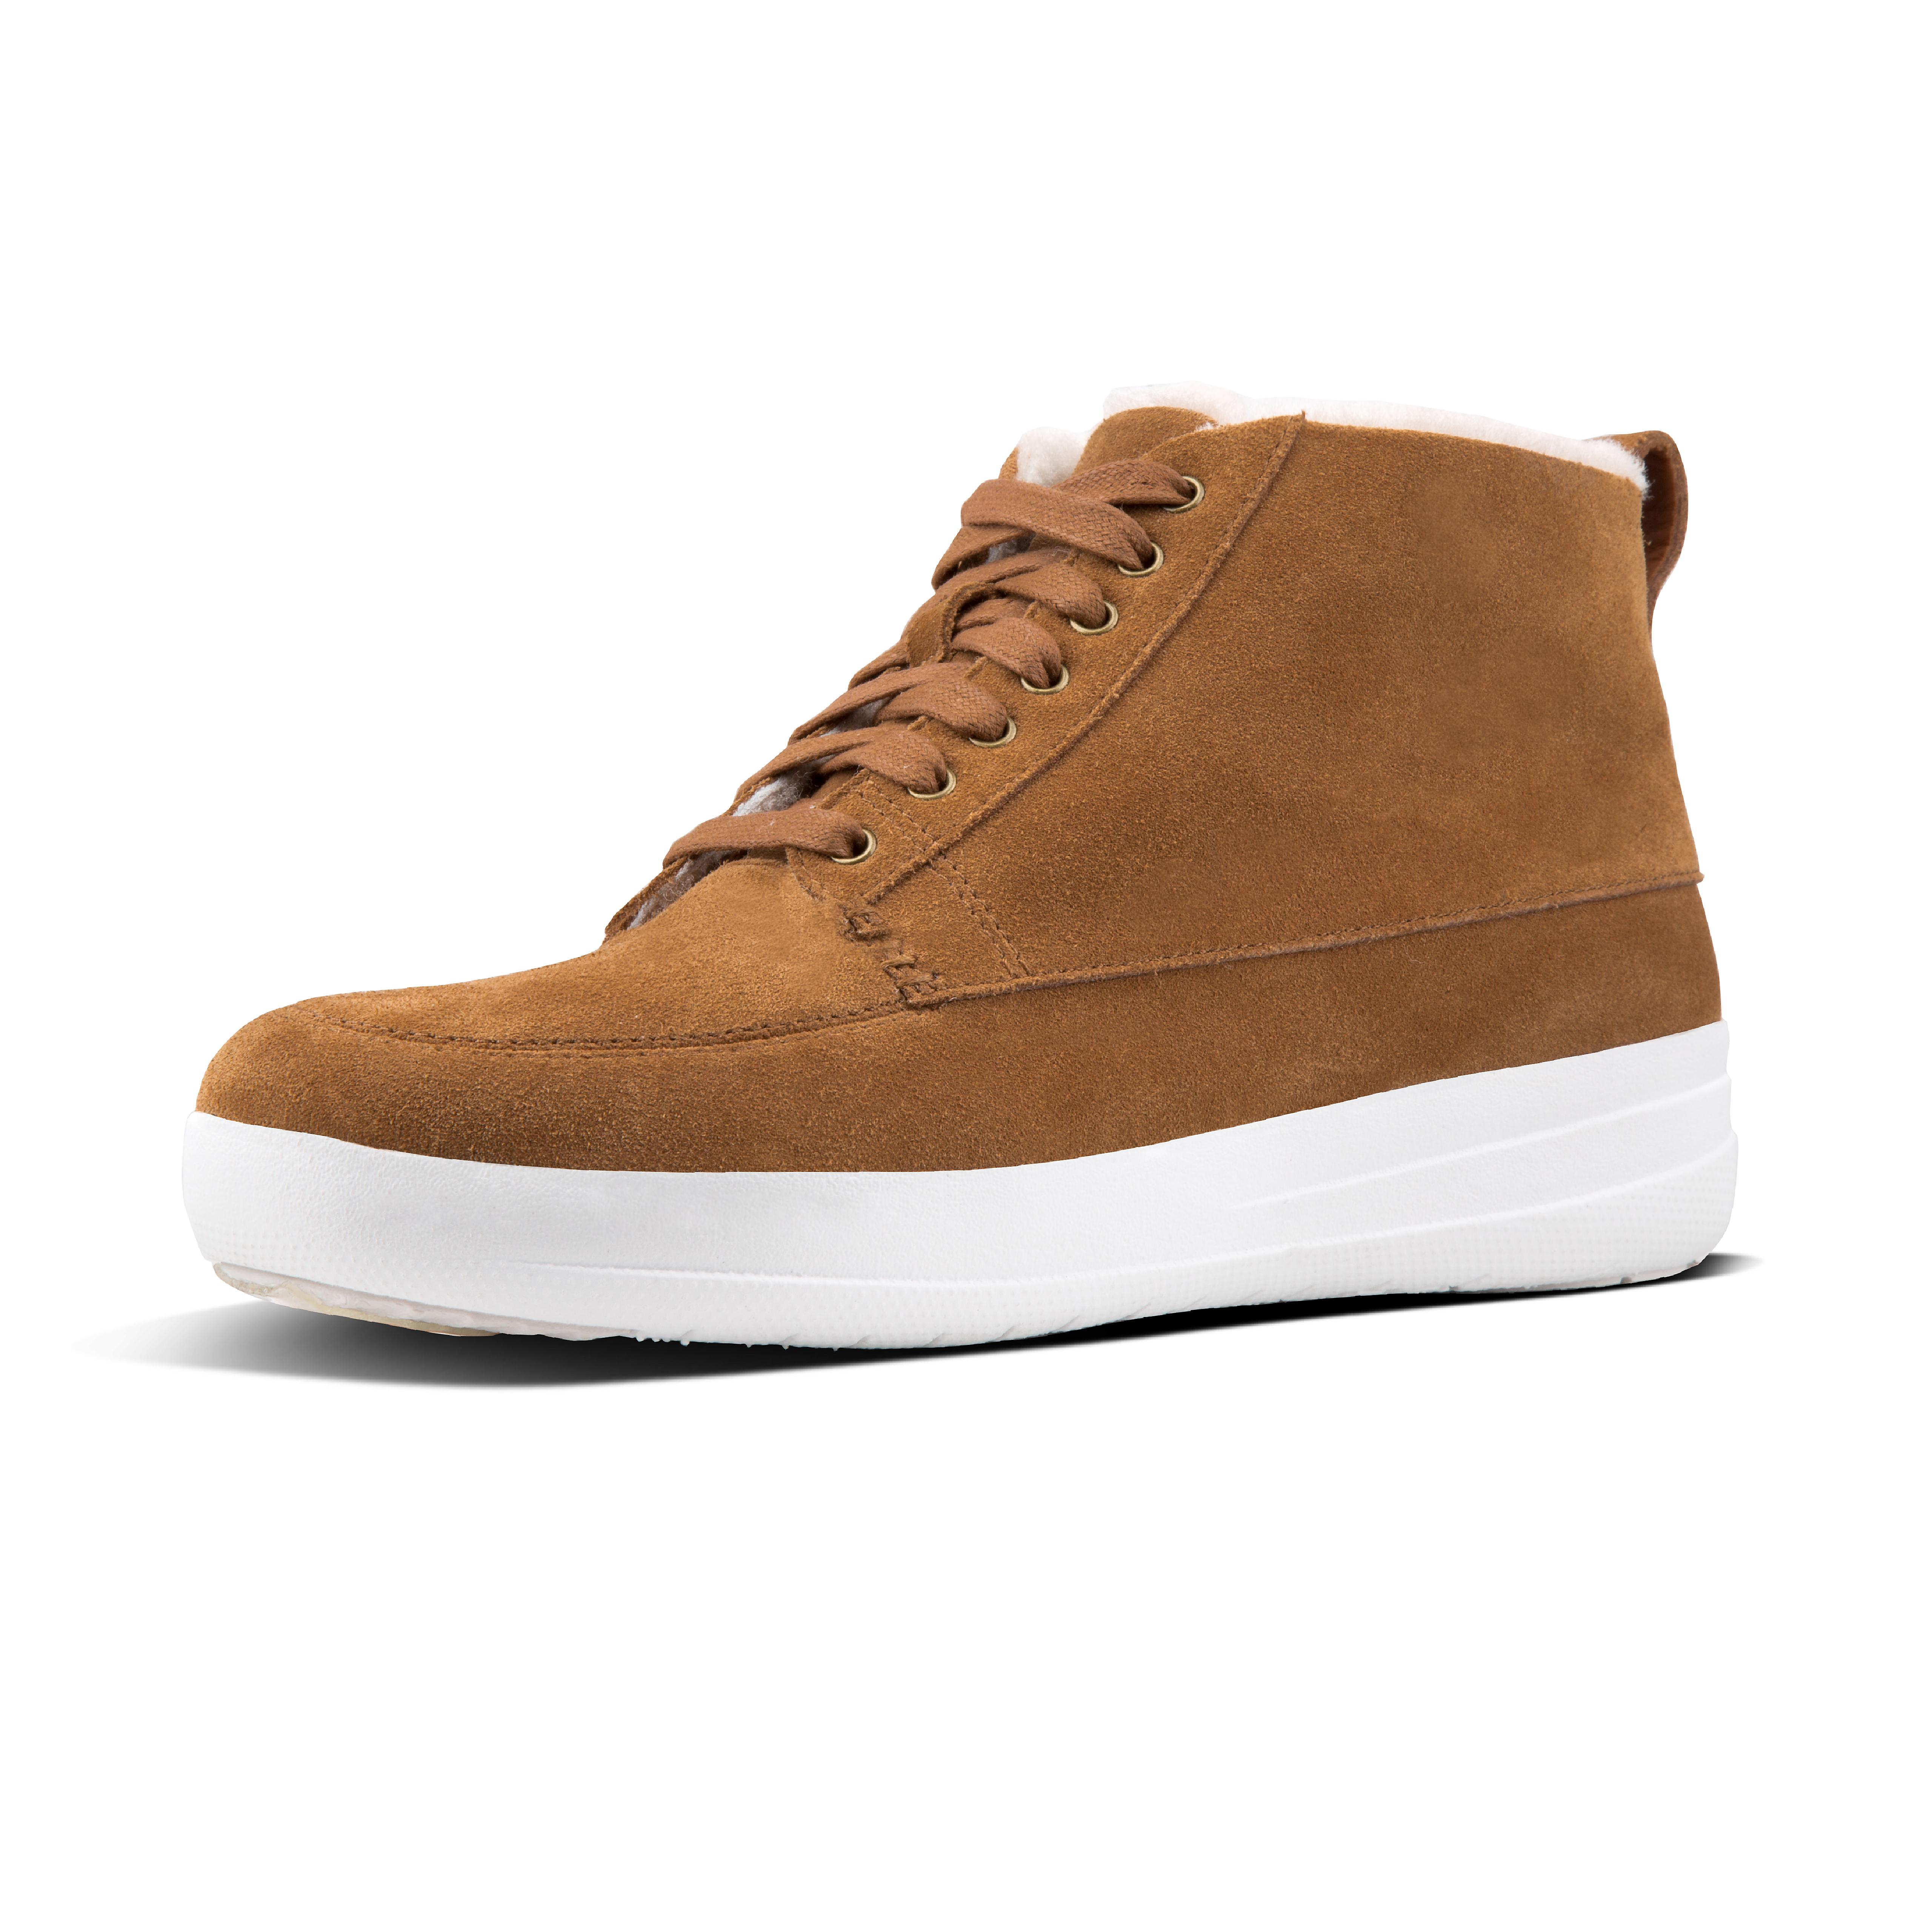 Sneakers that combine high-top cool with ultra cosiness. Crafted in soft suede with a fluffy toe-toasting shearling lining, and our superlight, all-day cushioning Anatomicush midsoles beneath, these deliver laidback style on the outside (try them with skinnies and an slouchy sweater) and instant 'snug' on the inside. Autumn/winter must-haves.